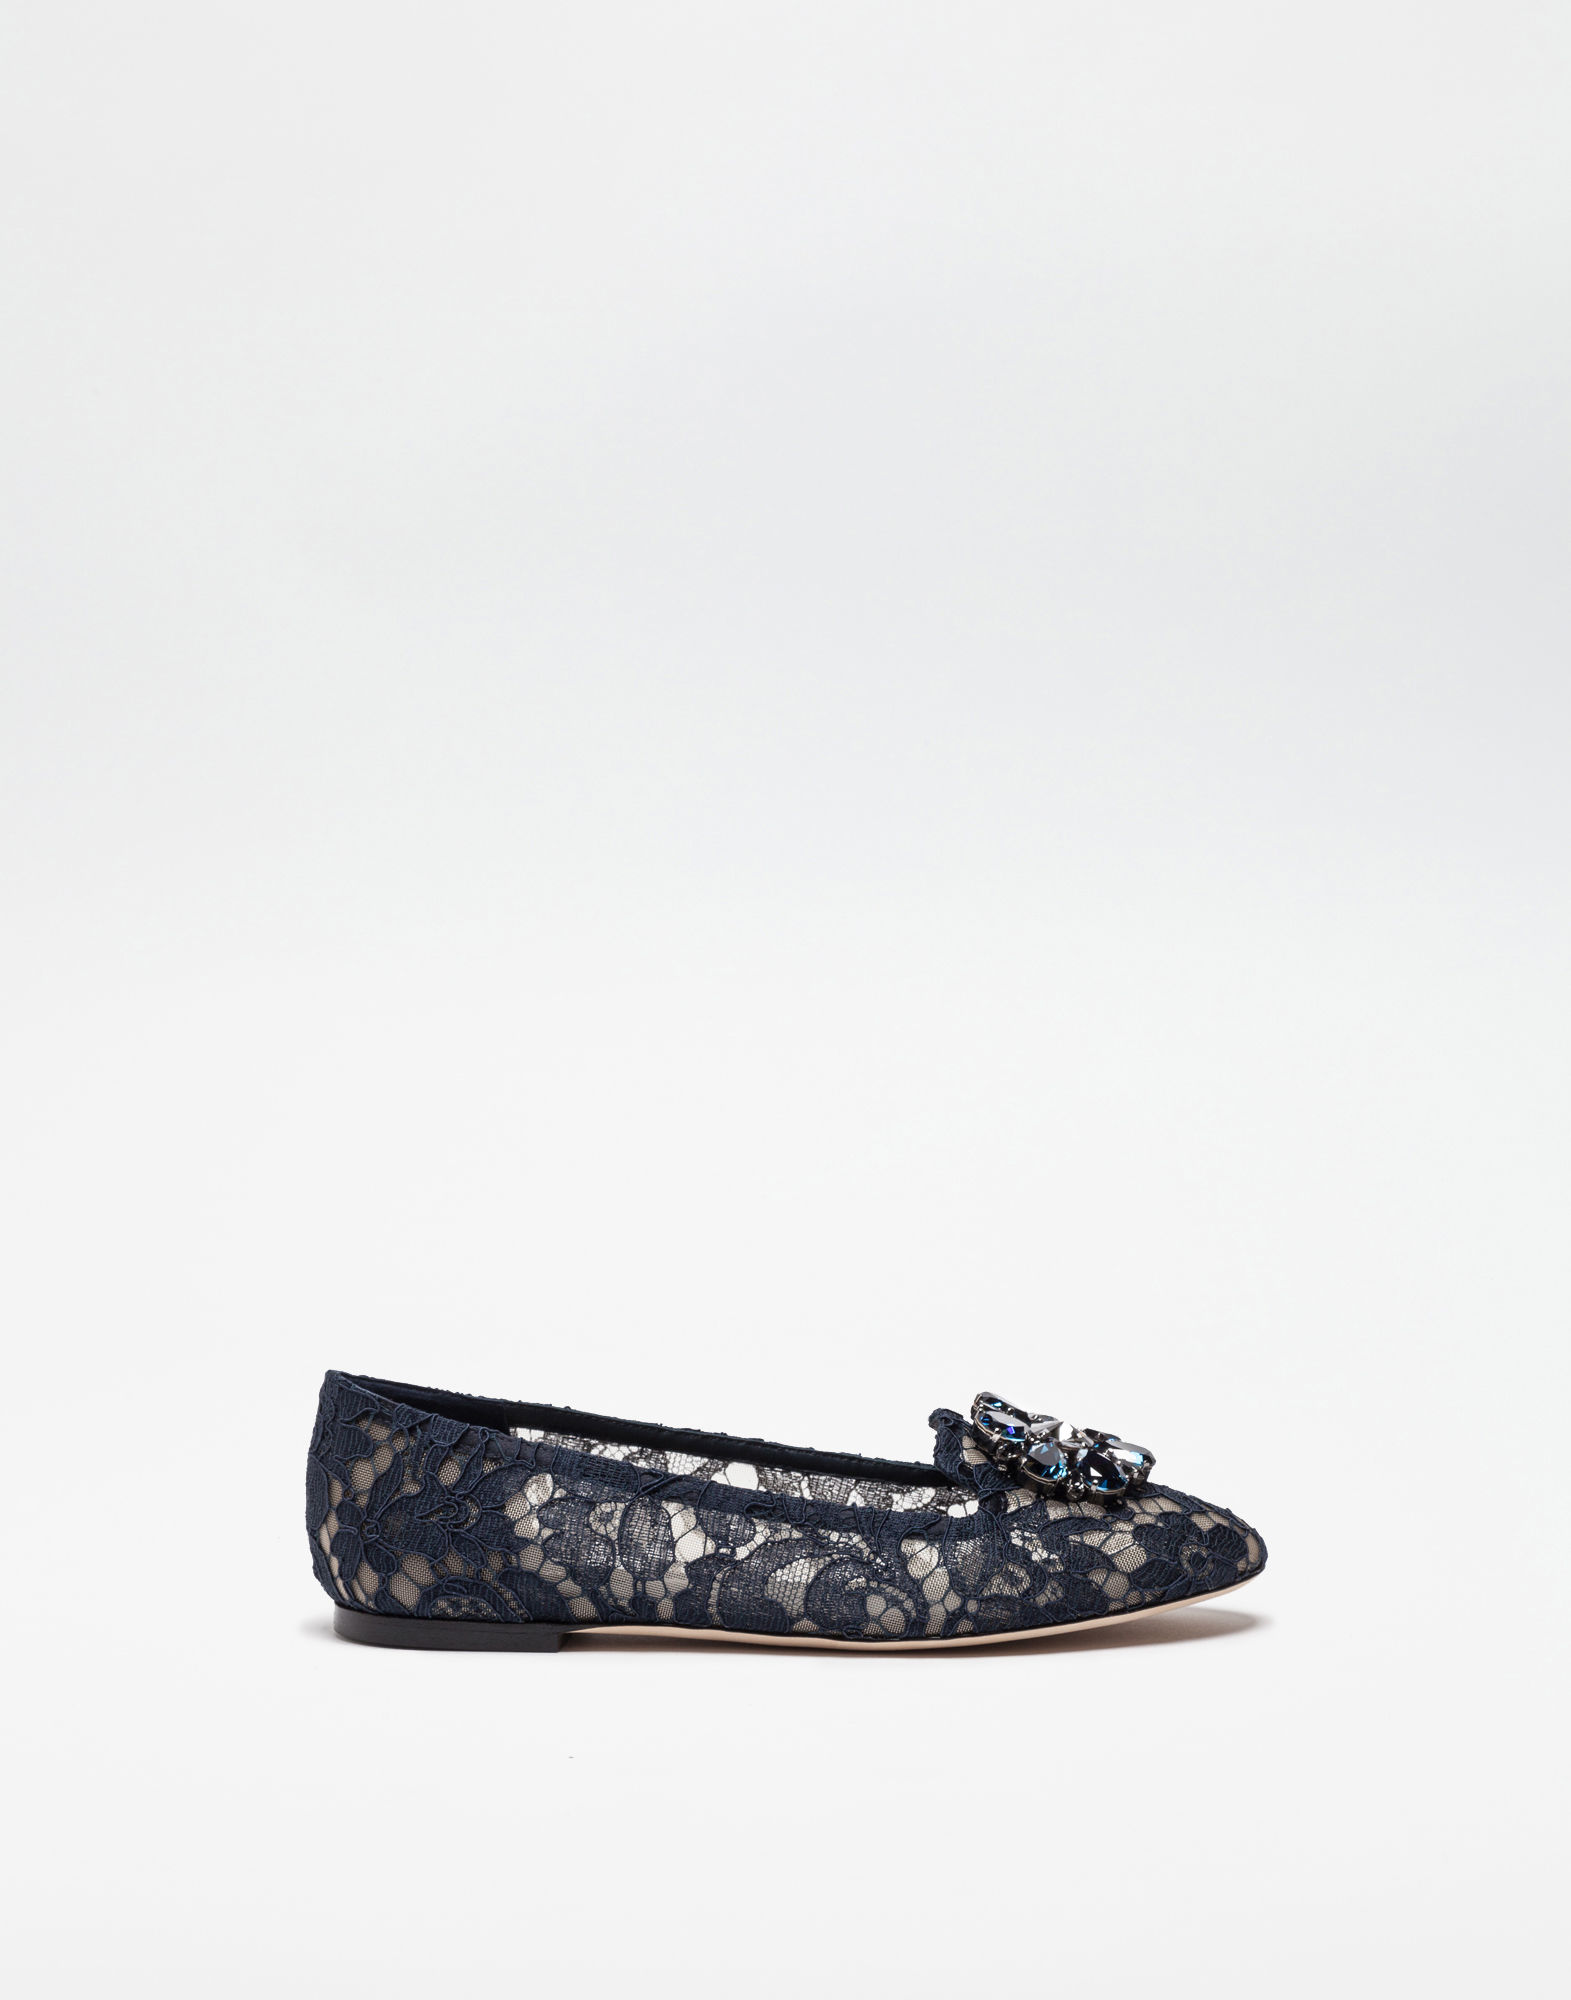 Dolce & Gabbana Slipper In Taormina Lace With Crystals In Blue